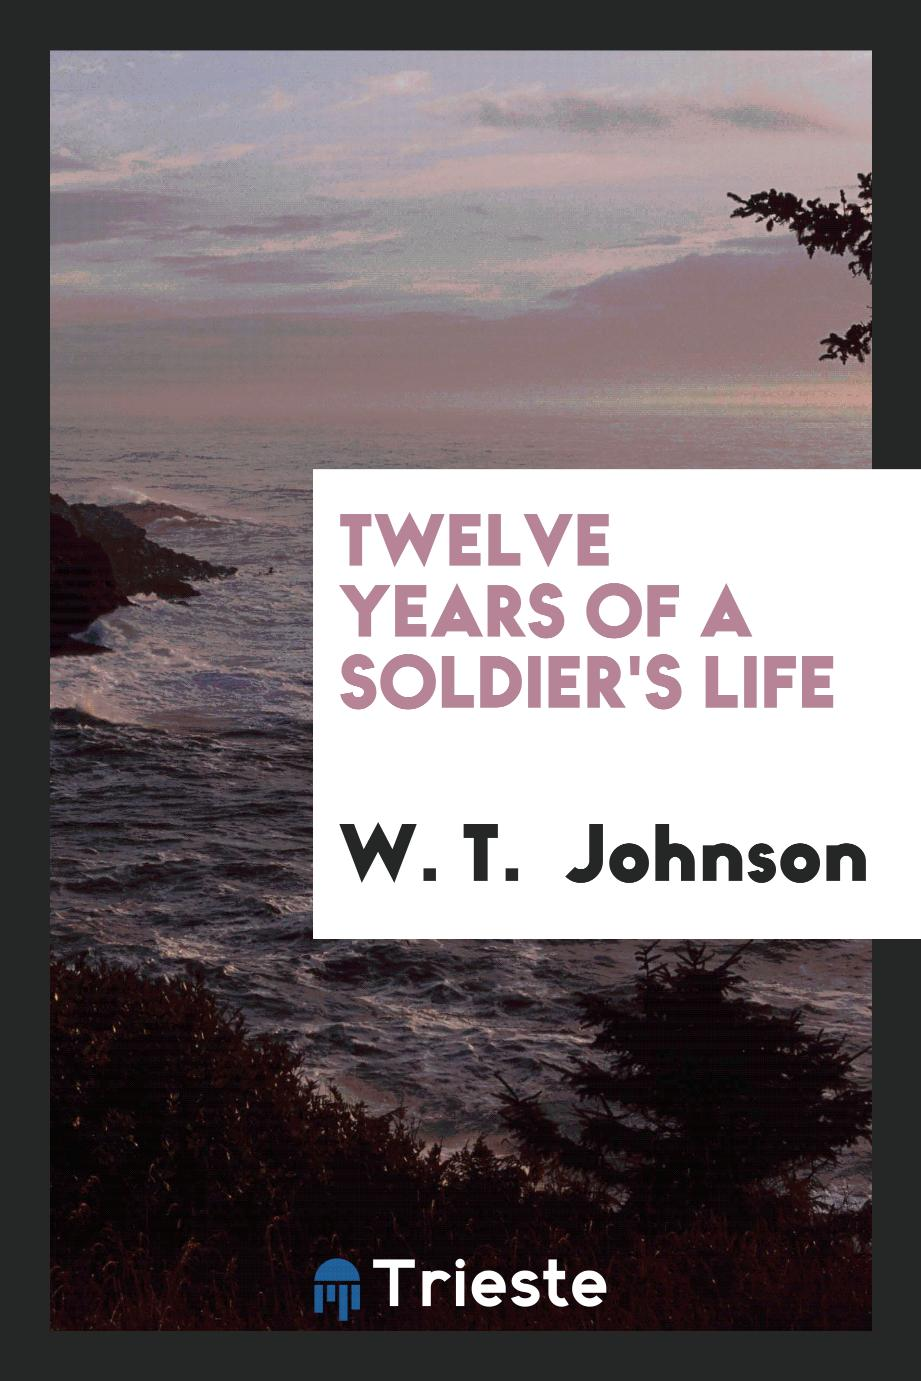 Twelve years of a soldier's life